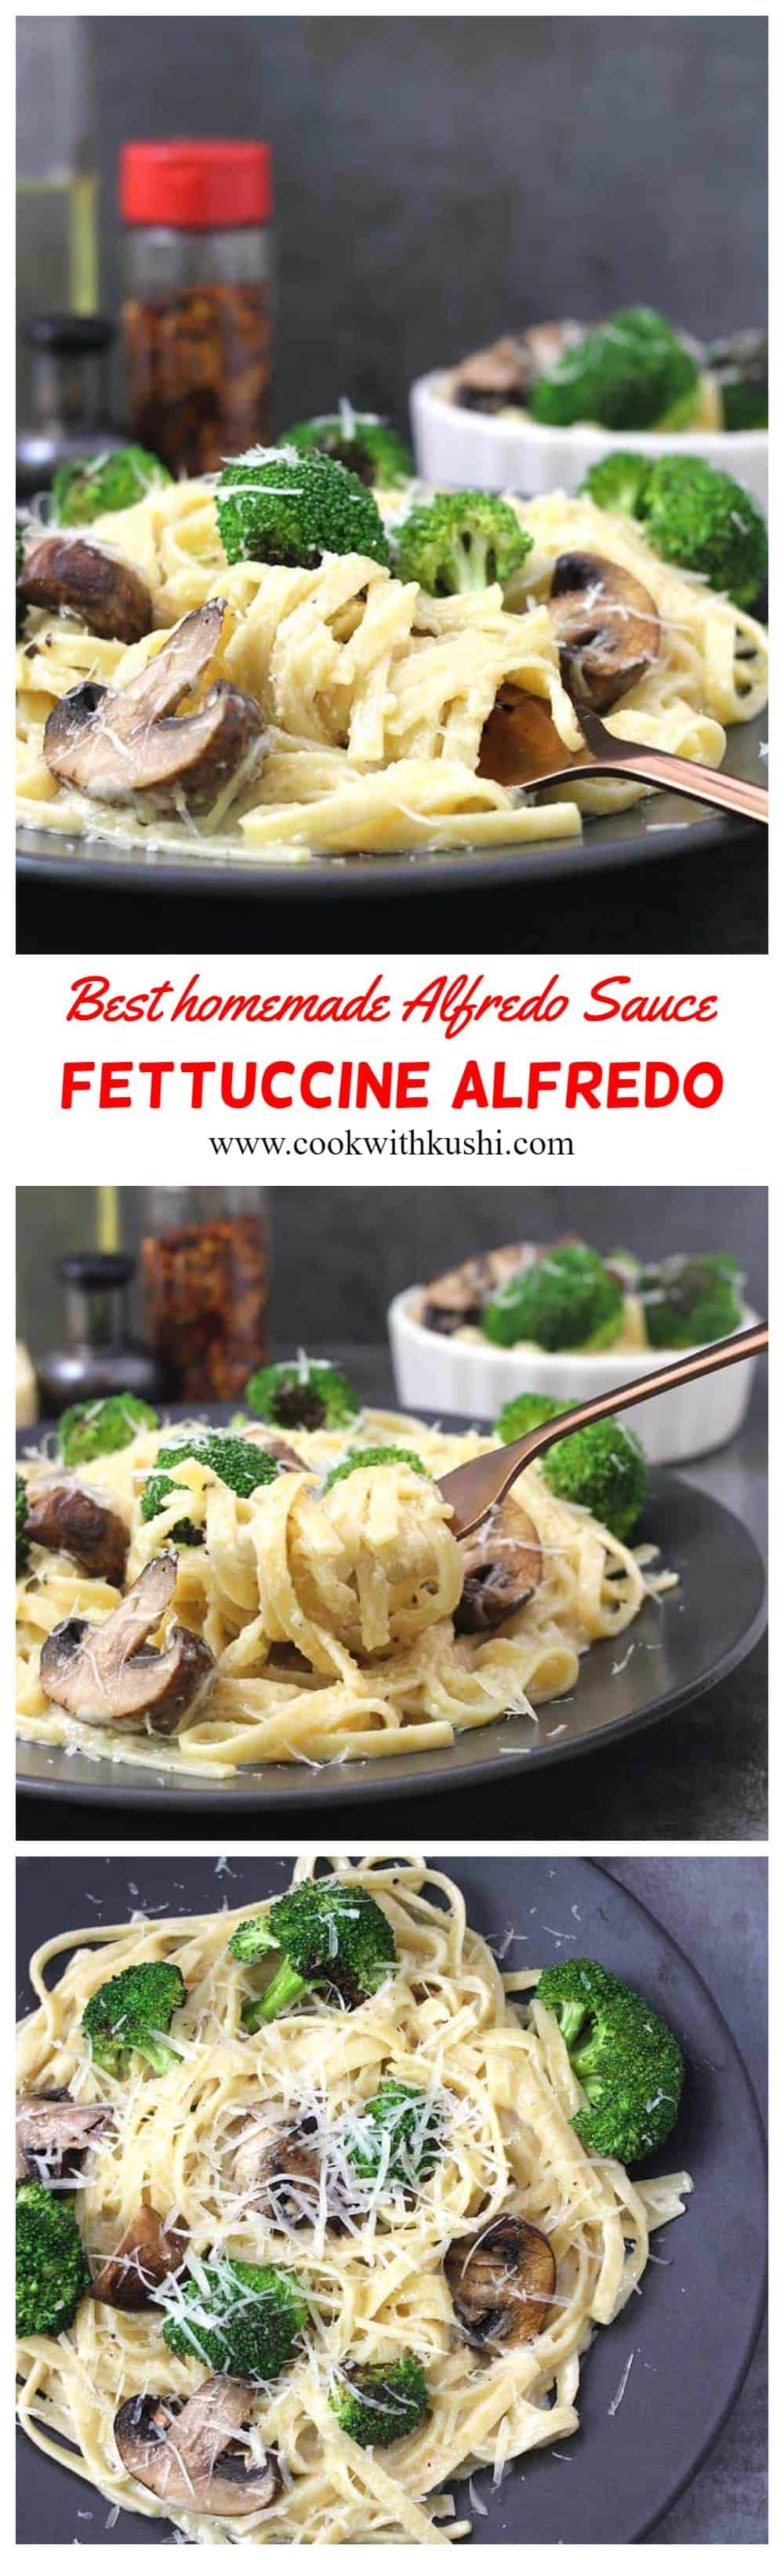 Fettuccine Alfredo or Fettuccine Al Burro is one of the classic & rich Italian pasta recipe that is creamy, buttery and cheesy where the fettuccine pasta is tossed in the best and easy homemade alfredo sauce. #fettuccinealfredo #pastarecipes #italianrecipes #homemadesauce #pastasauce #whitesauce #broccoli #mushrooms #chickenalfredo #shrimpalfredo #dinenrrecipes #maincourse #instantpot #homemade #kidsfriendly #vegetariandinner